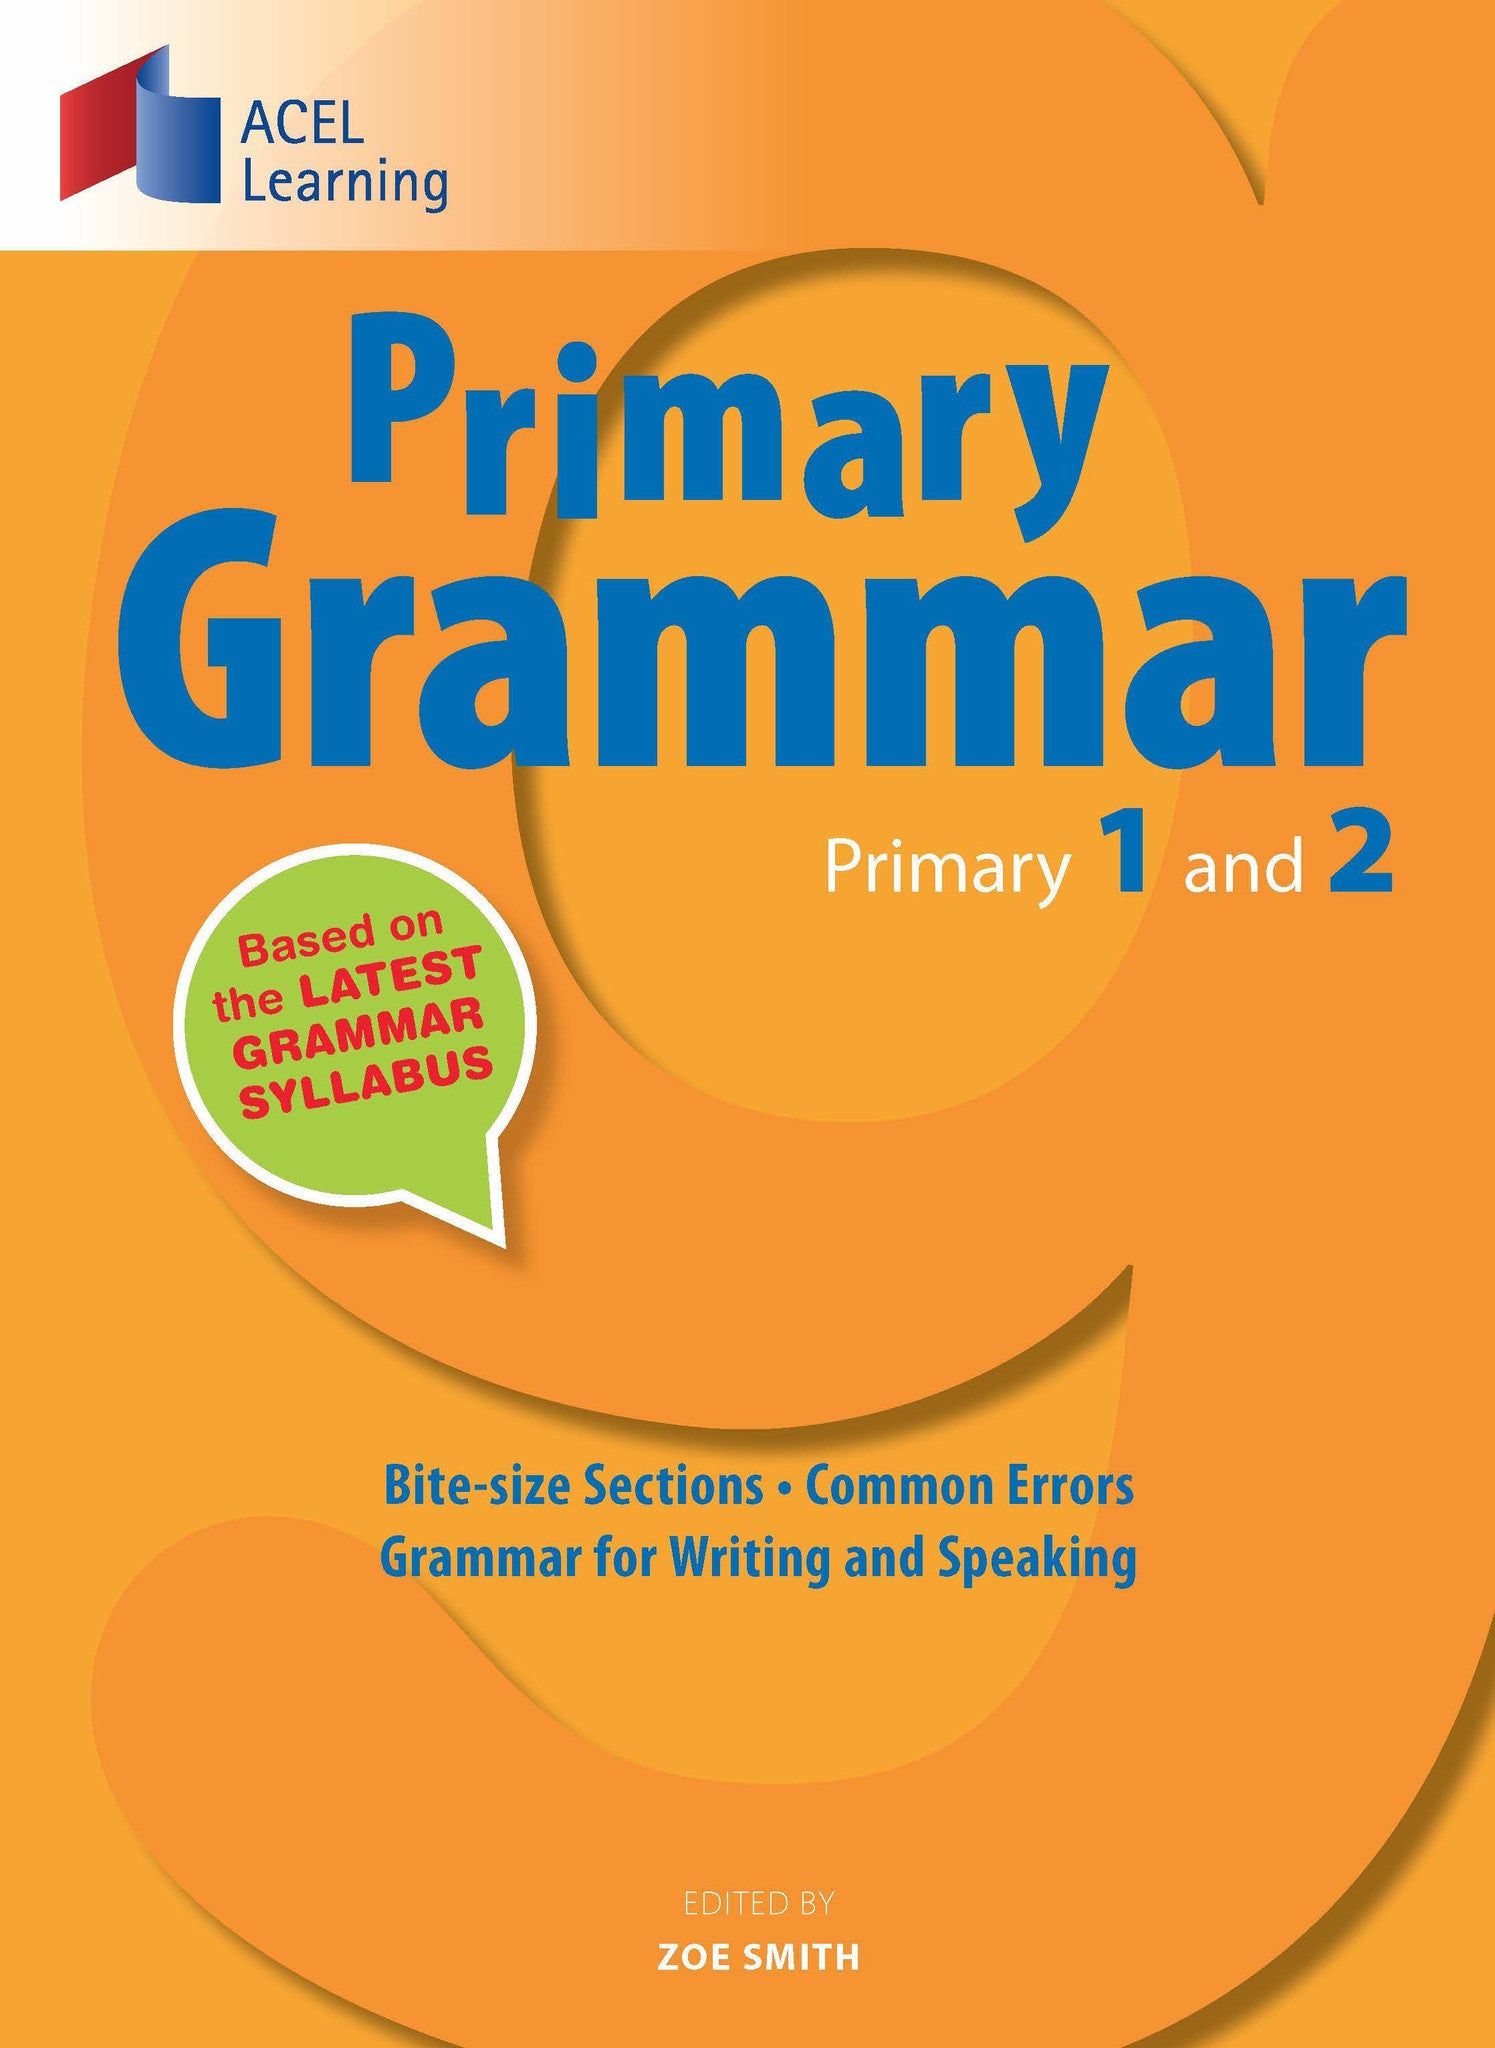 Primary Grammar (Primary 1 and 2)